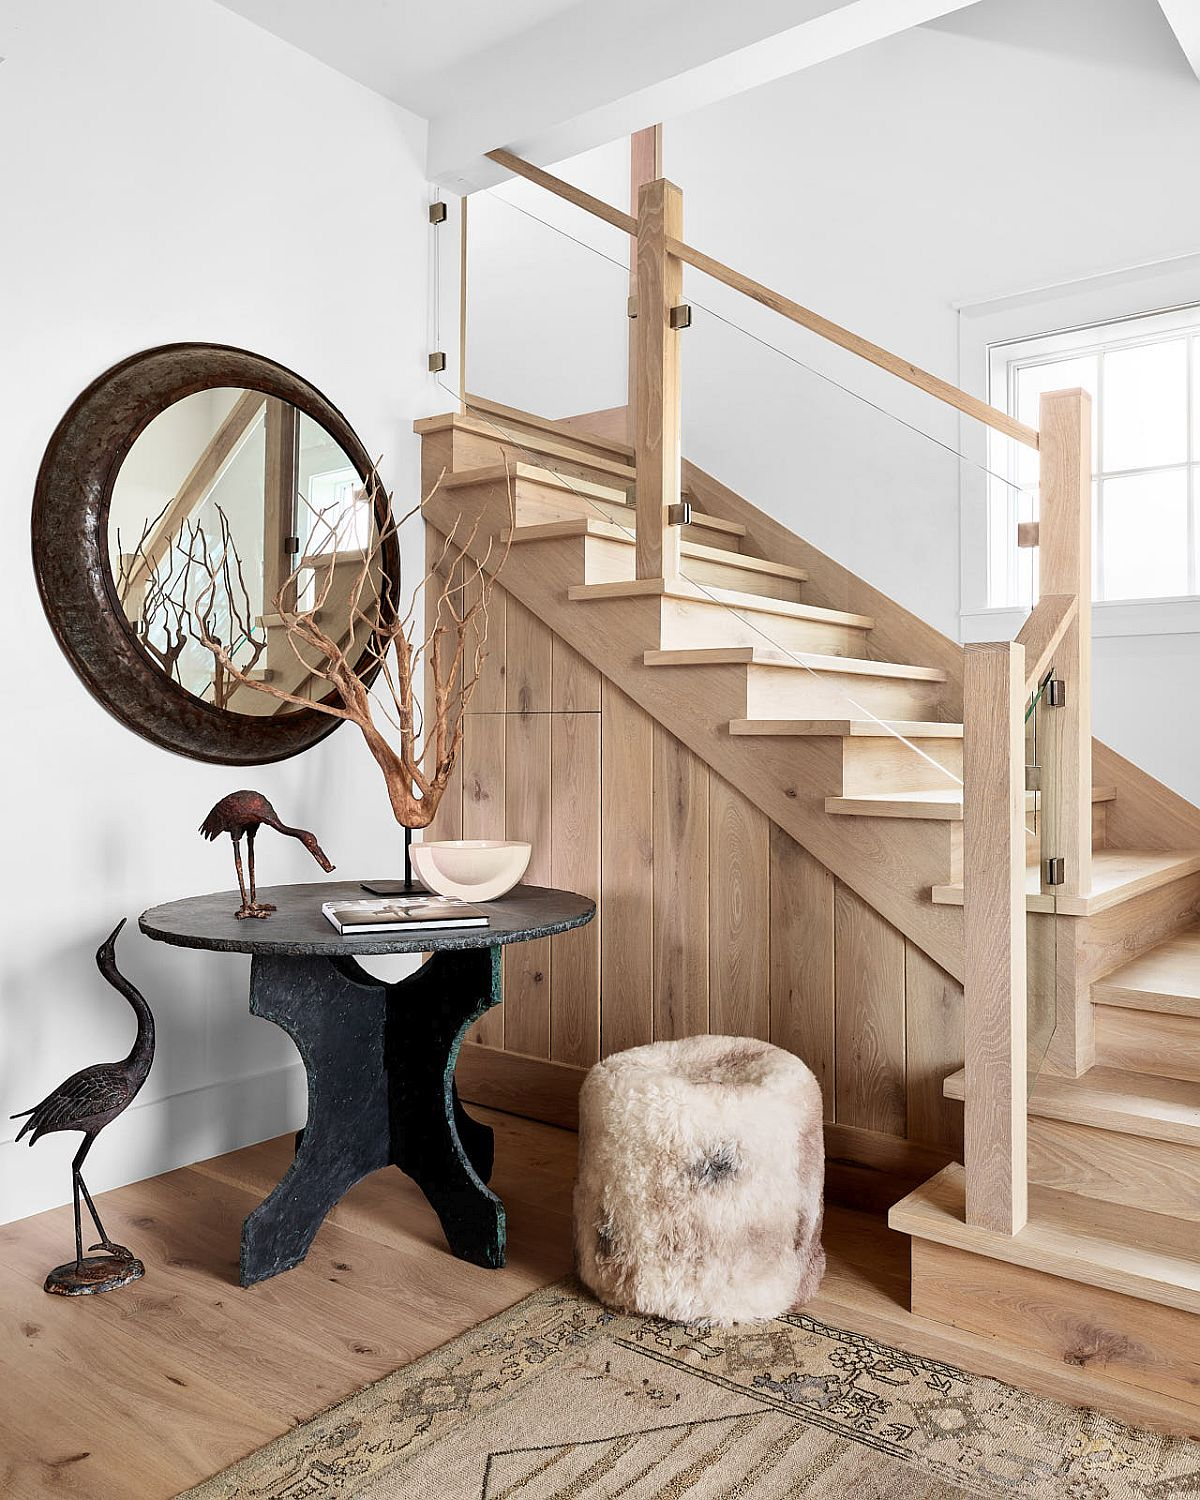 Beach-style-entry-to-the-bungalow-with-a-vintage-console-table-round-mirror-and-staircase-leading-to-the-upper-level-40810